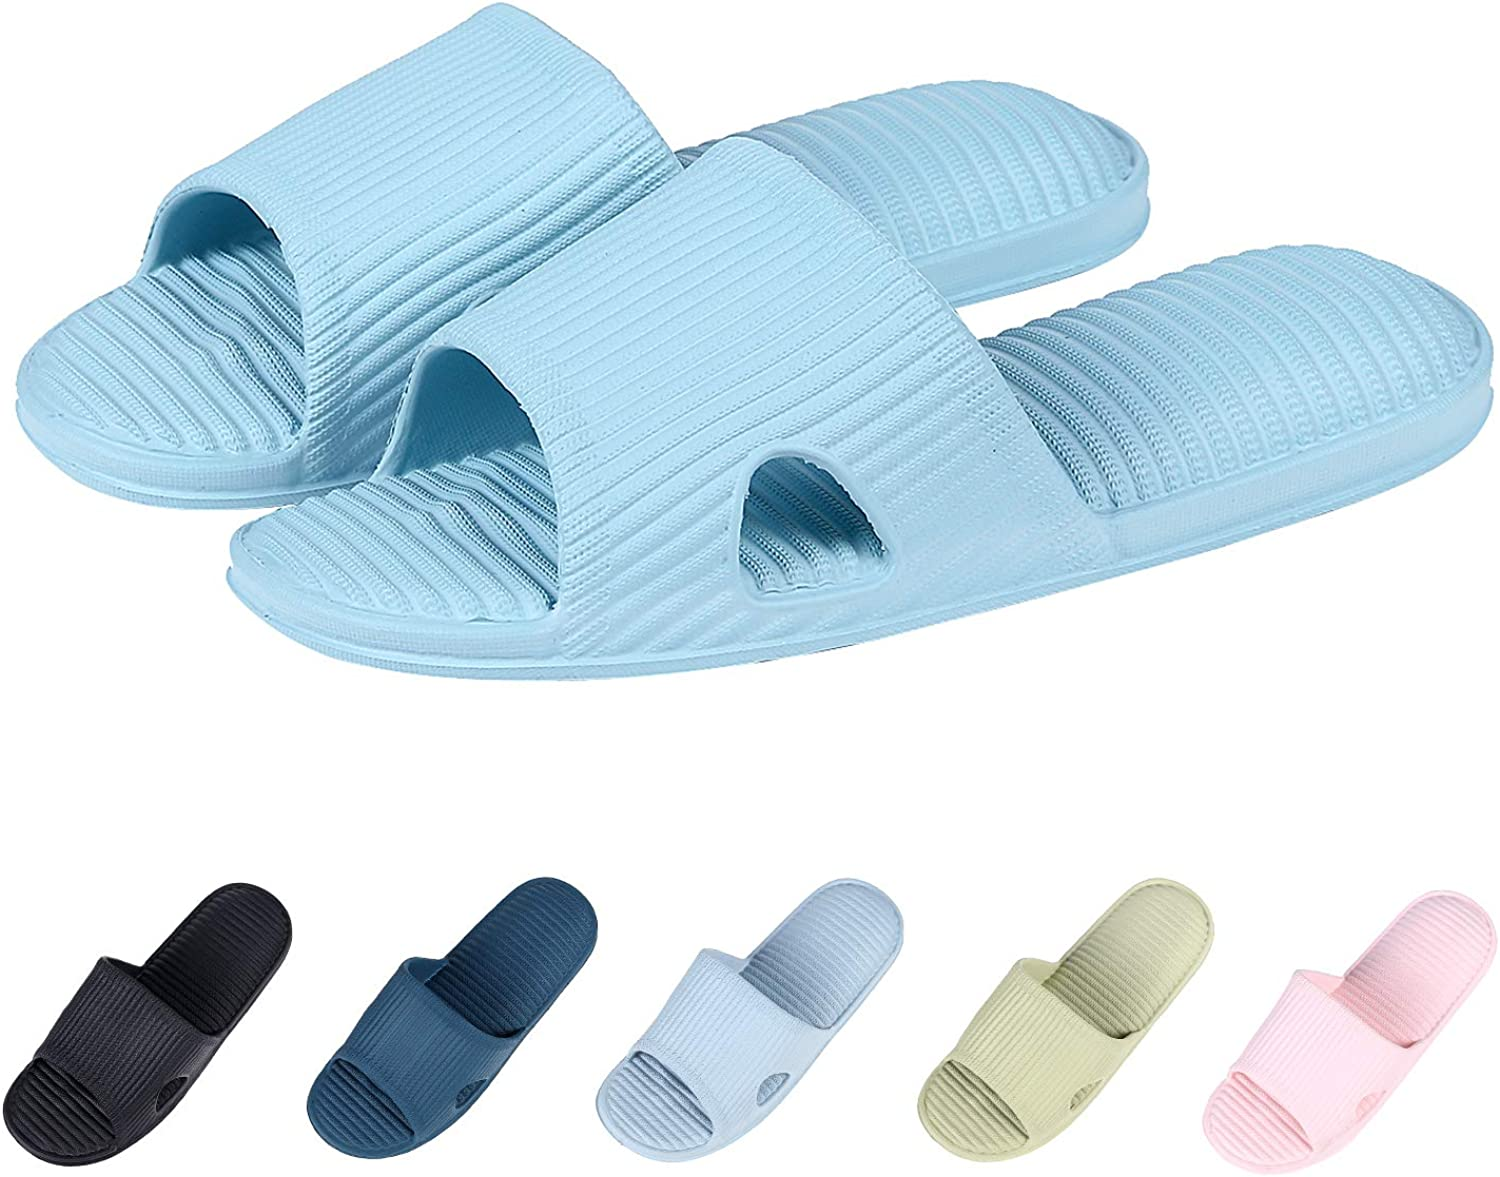 Shevalues High Elastic Bath Slippers Raised Footbed Quick Dry Shower Sandal Ultra Lightweight Cozy House Slippers LB-M